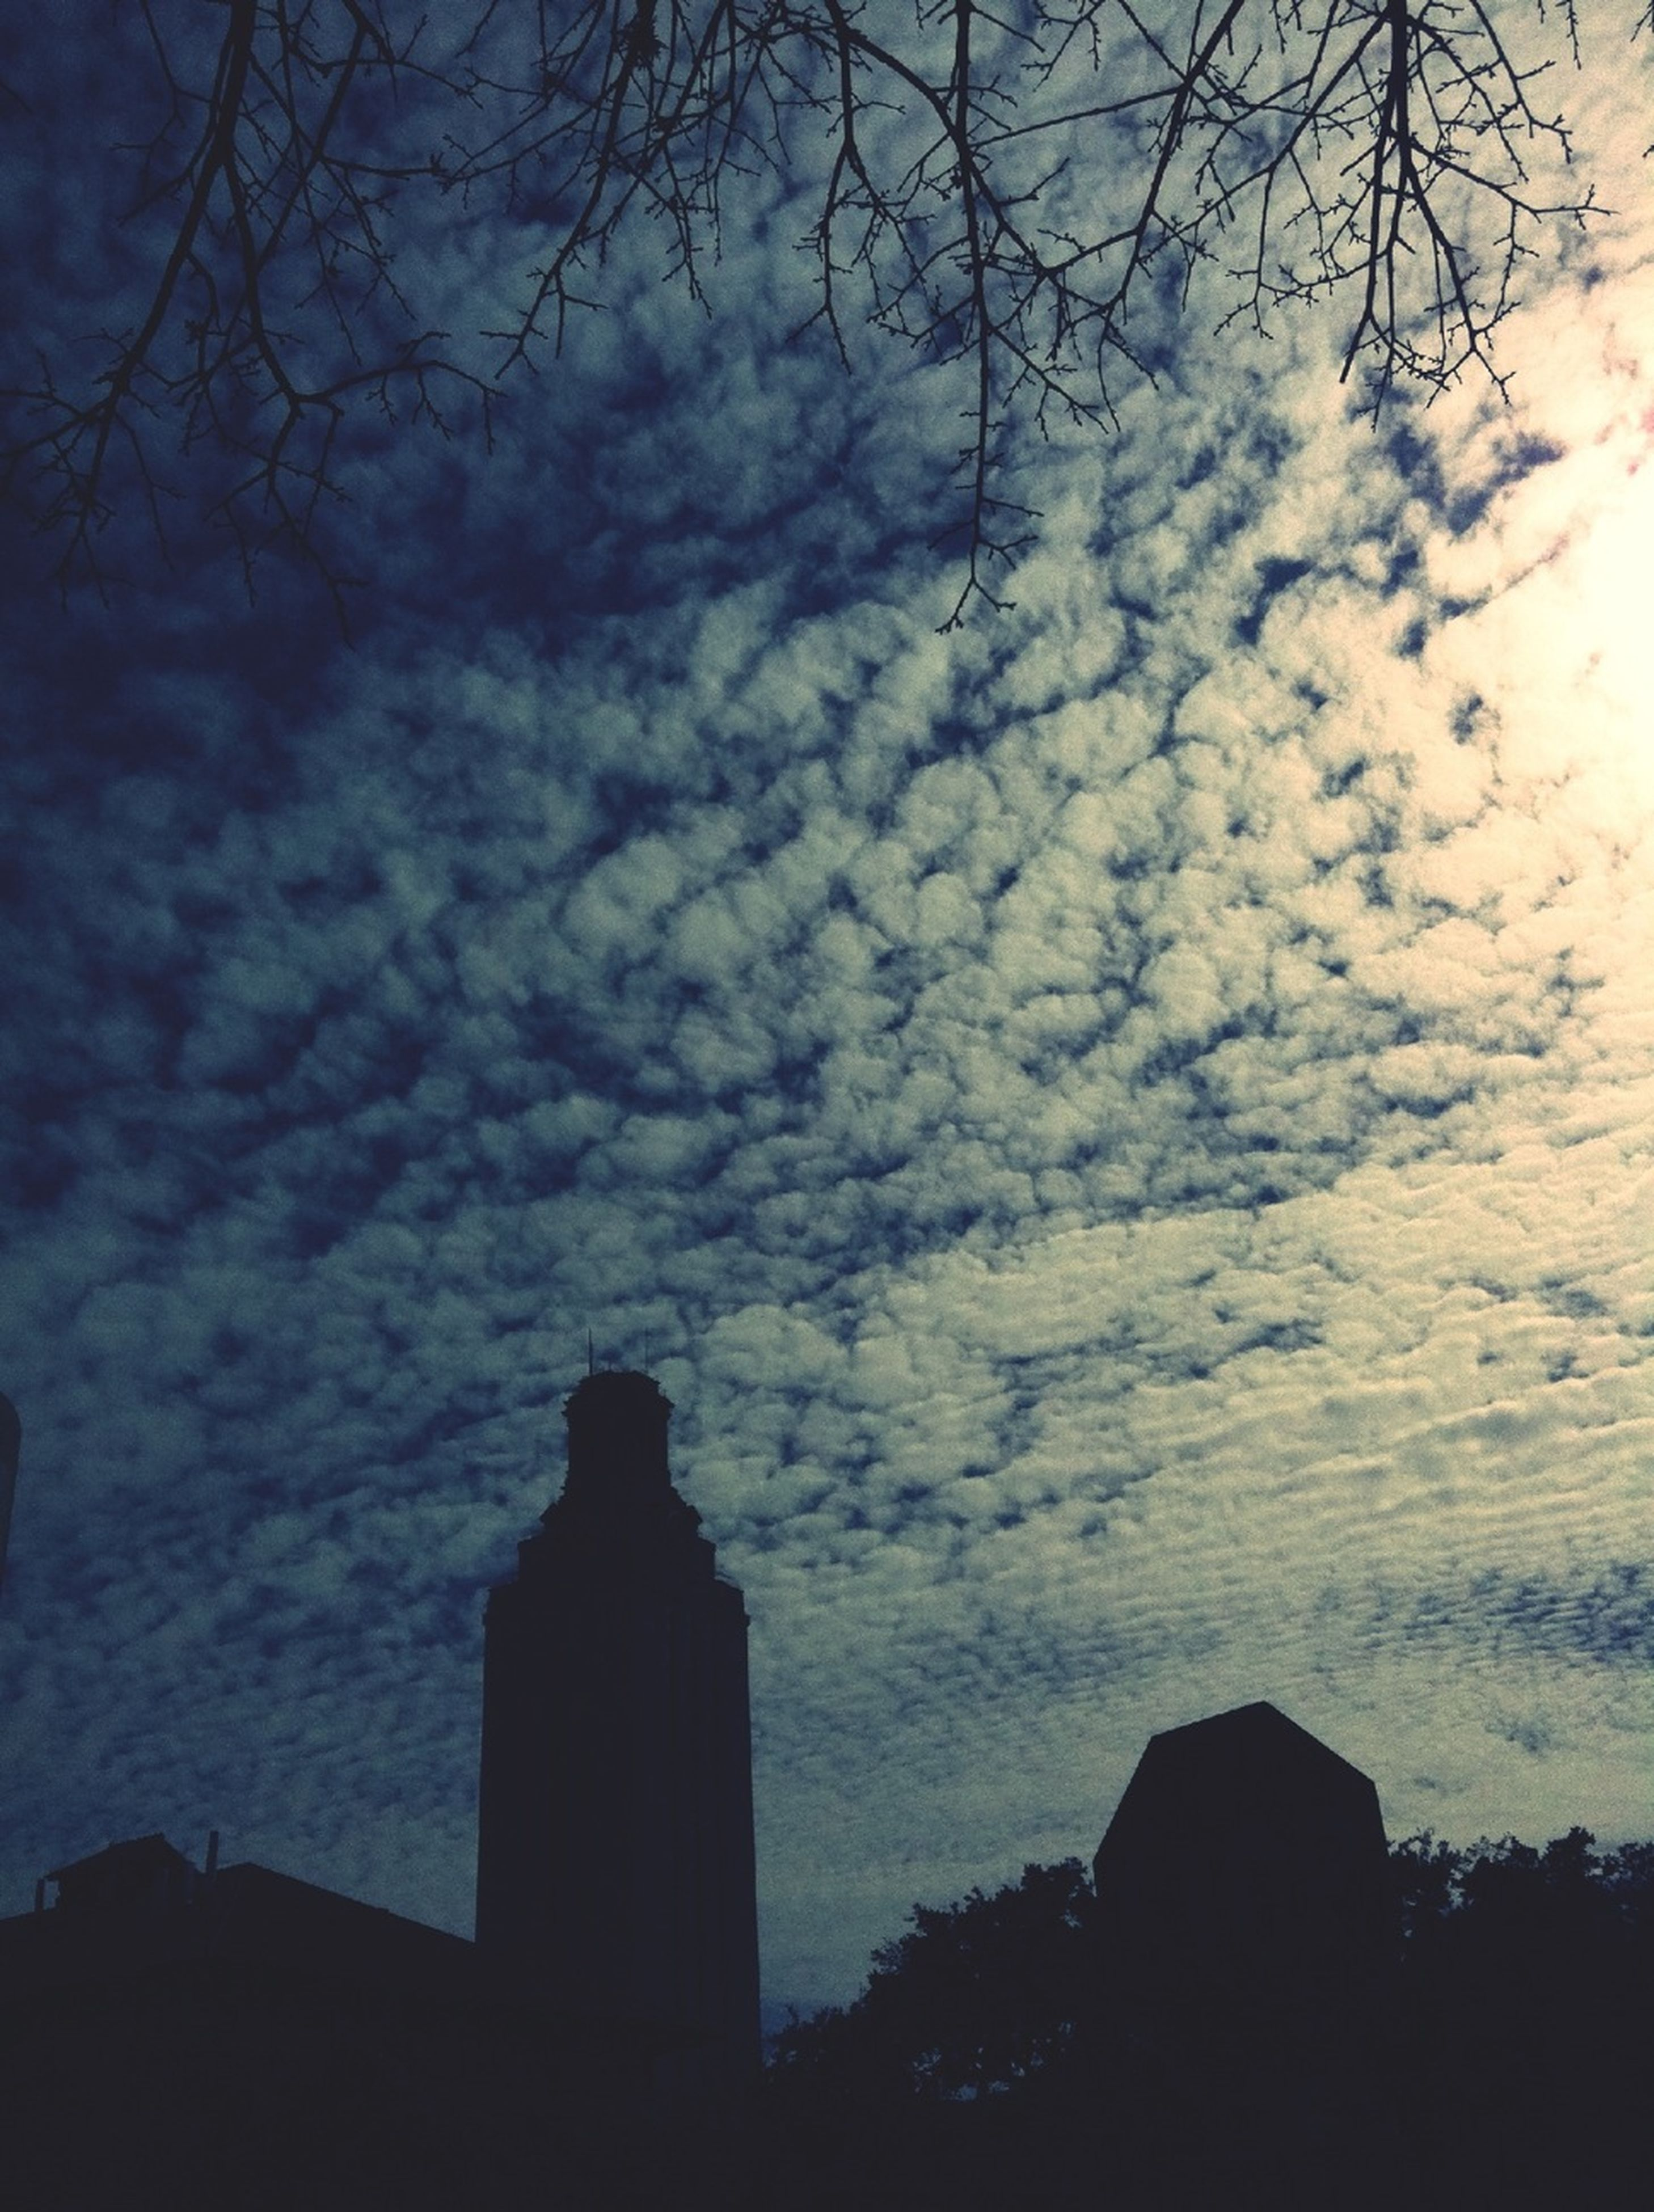 silhouette, sky, cloud - sky, architecture, built structure, building exterior, tree, cloudy, low angle view, dusk, cloud, sunset, nature, tranquility, beauty in nature, scenics, weather, bare tree, outdoors, tranquil scene